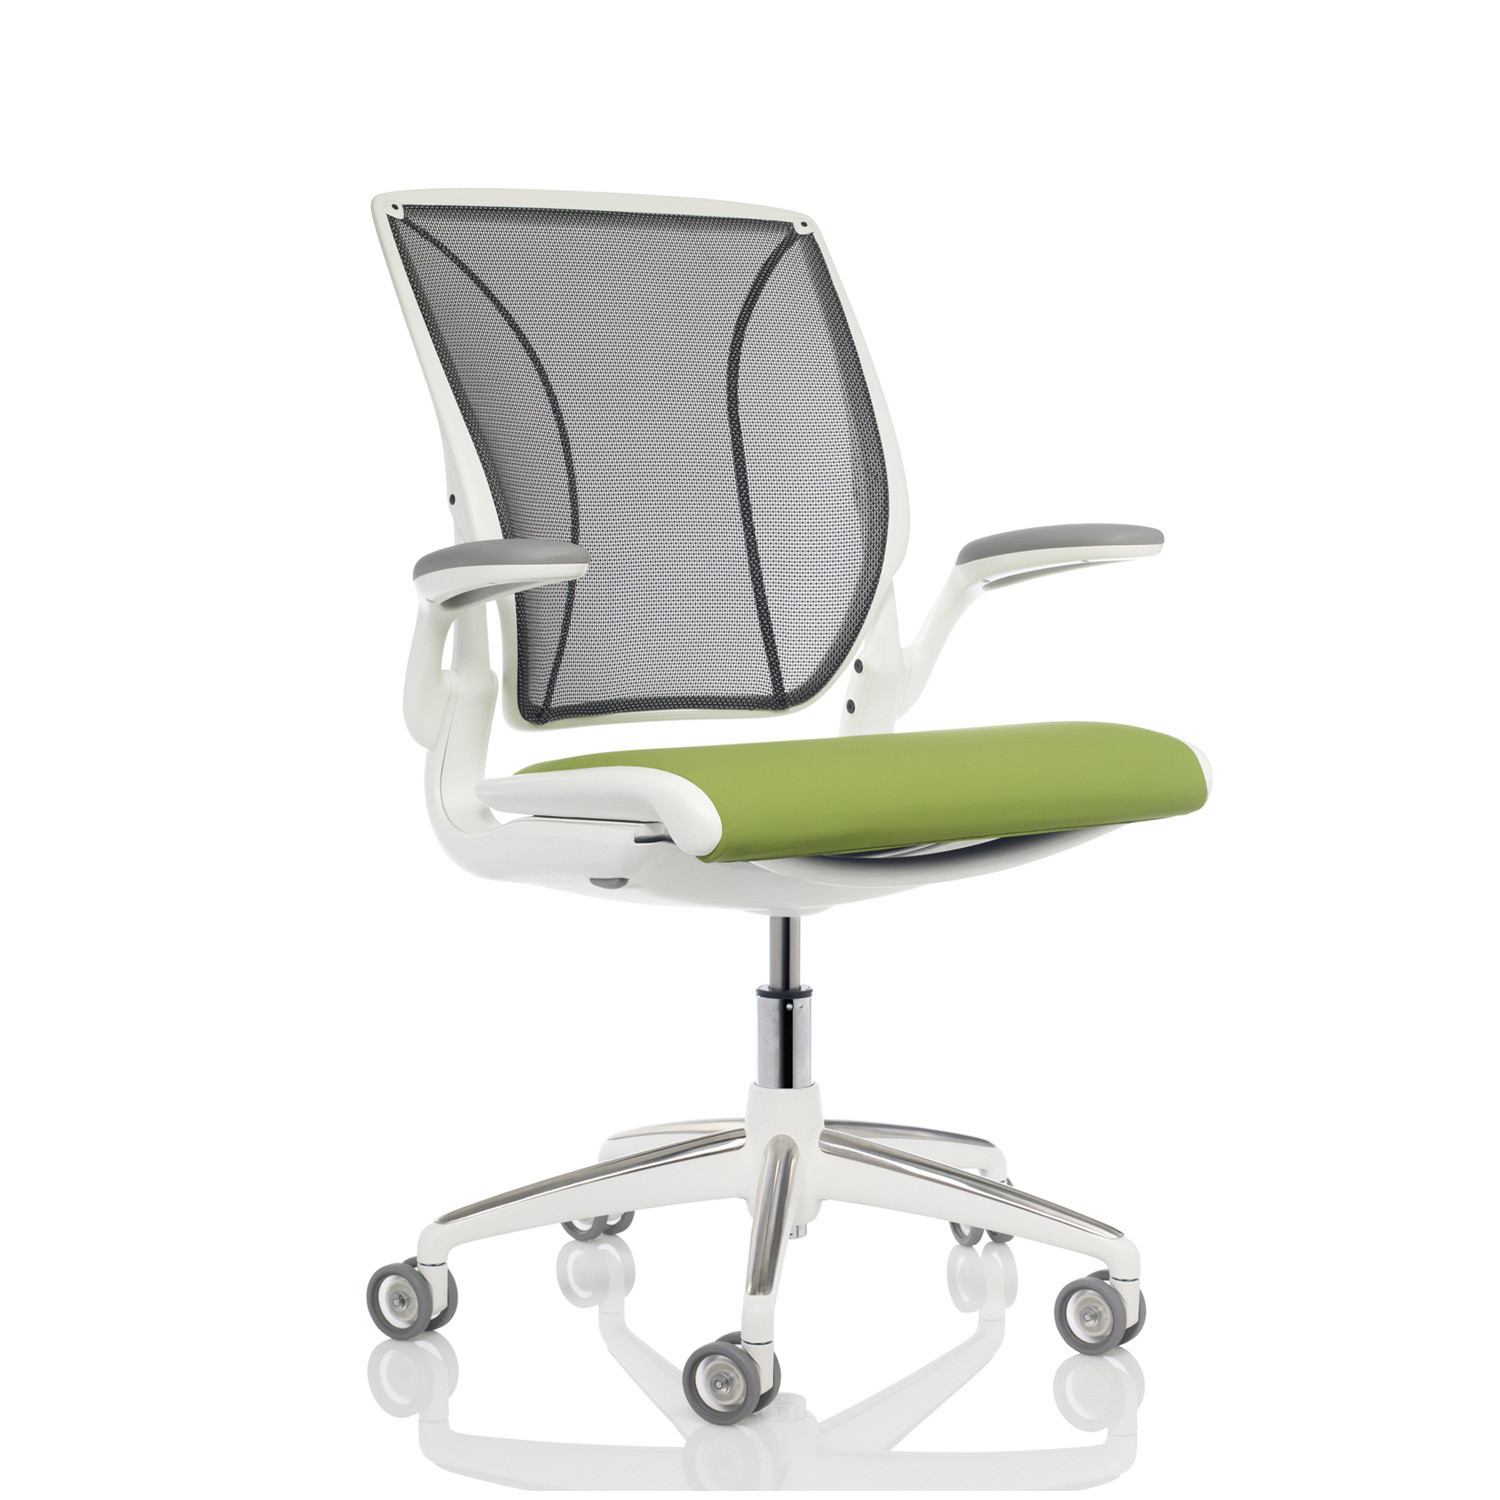 Diffrient World Mesh Office Chair